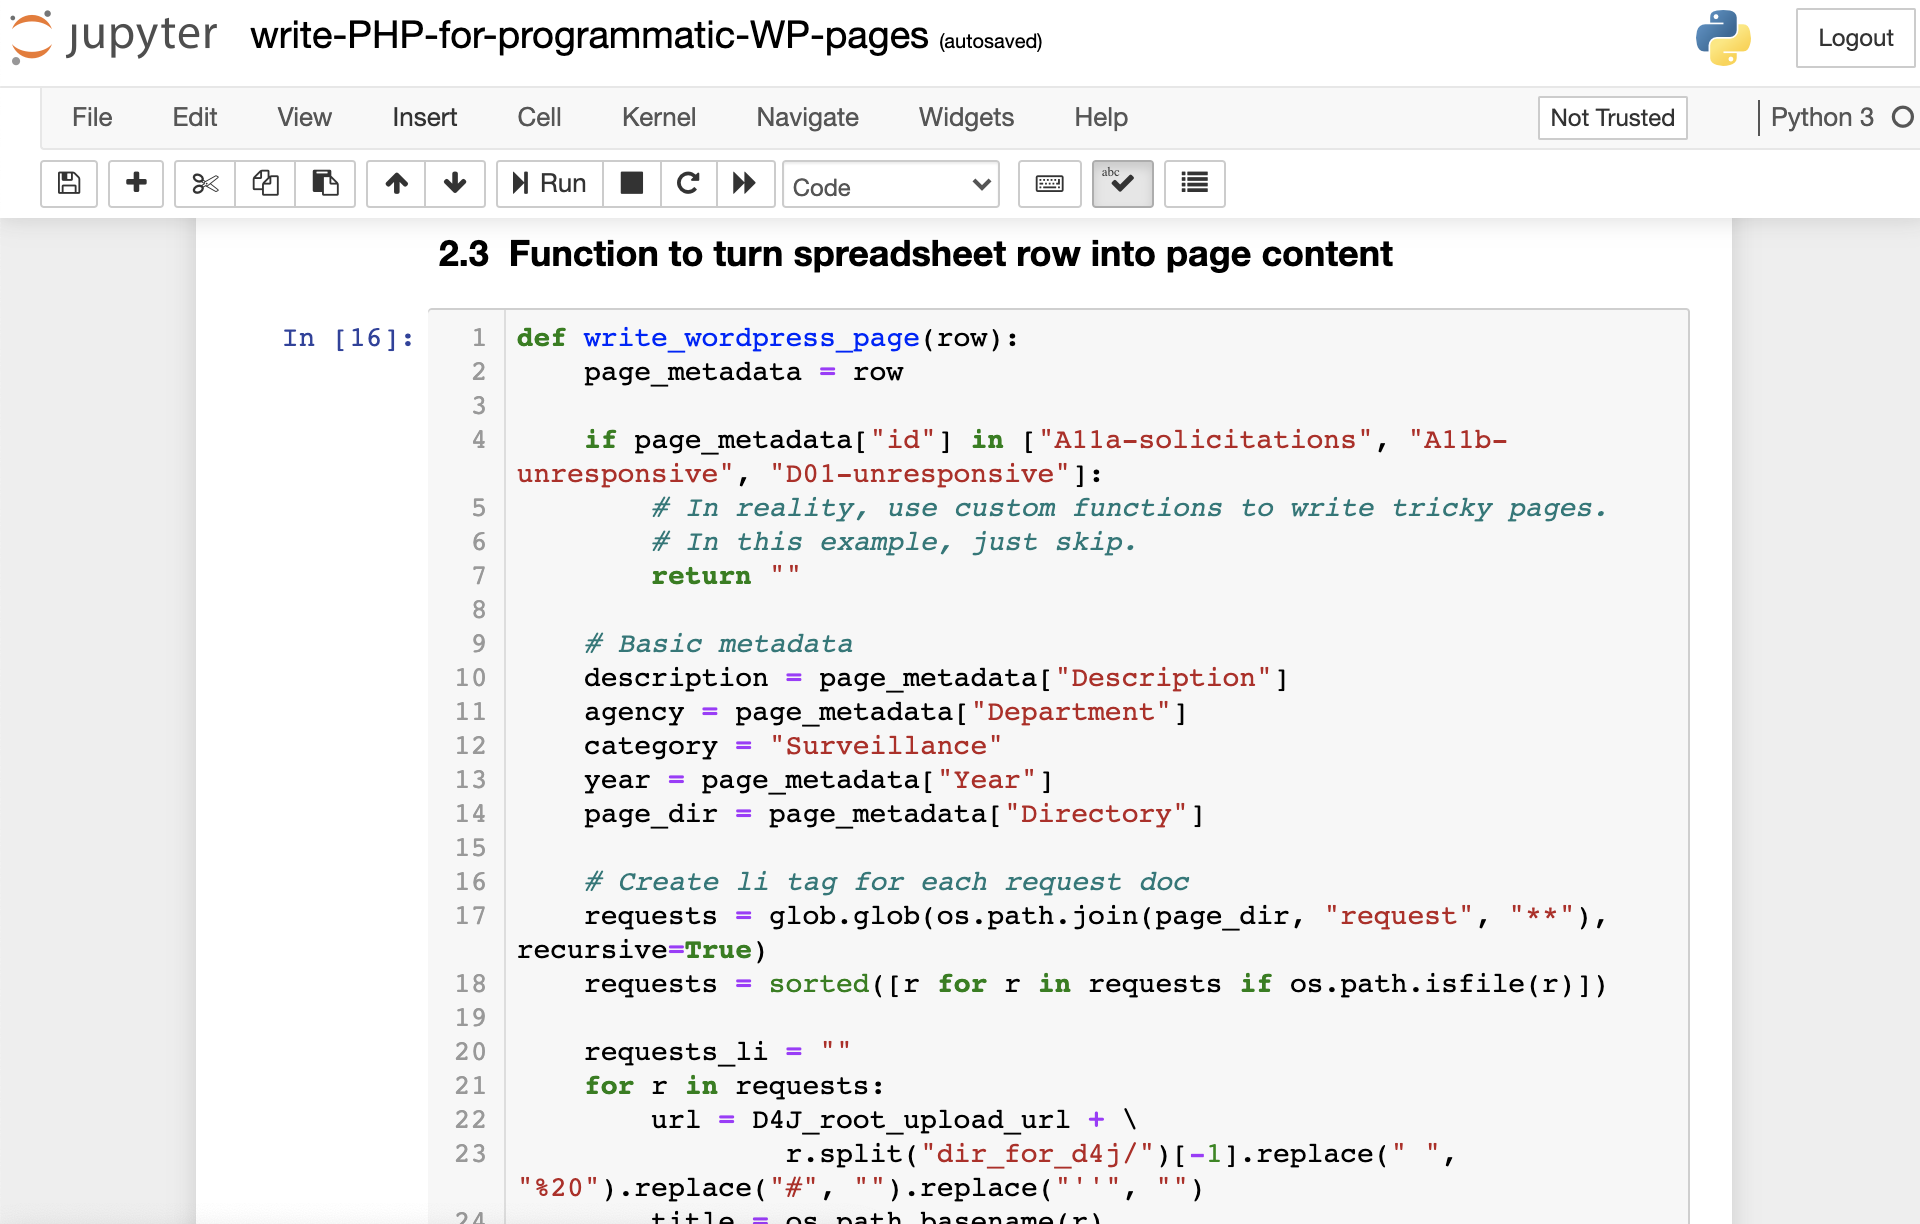 Screenshot of Jupyter notebook with function to turn spreadsheet of page metadata into Wordpress page content